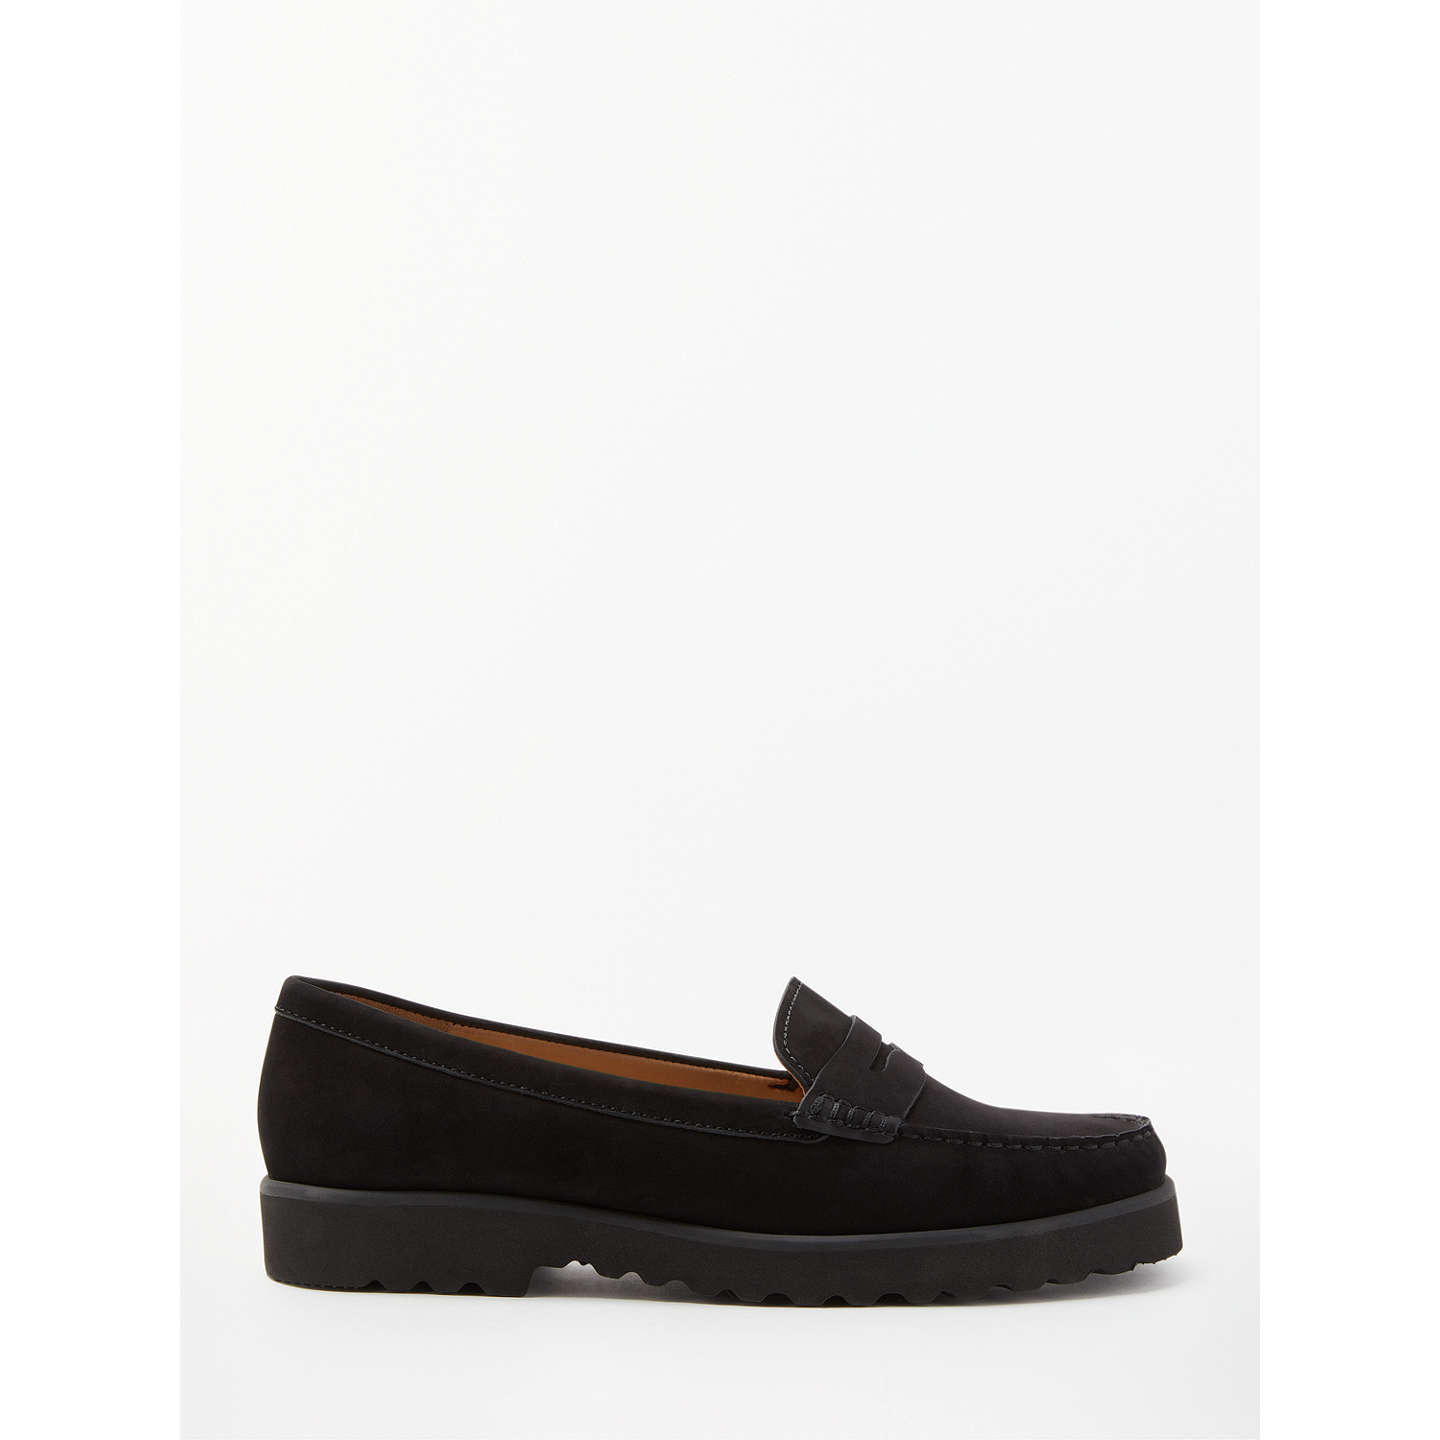 Buy Cheap Footlocker Low Cost Cheap Price John Lewis Oslo 2 Slip On Platform Moccasins Cheap Sale Footlocker Buy Cheap Cheap UXSfl7